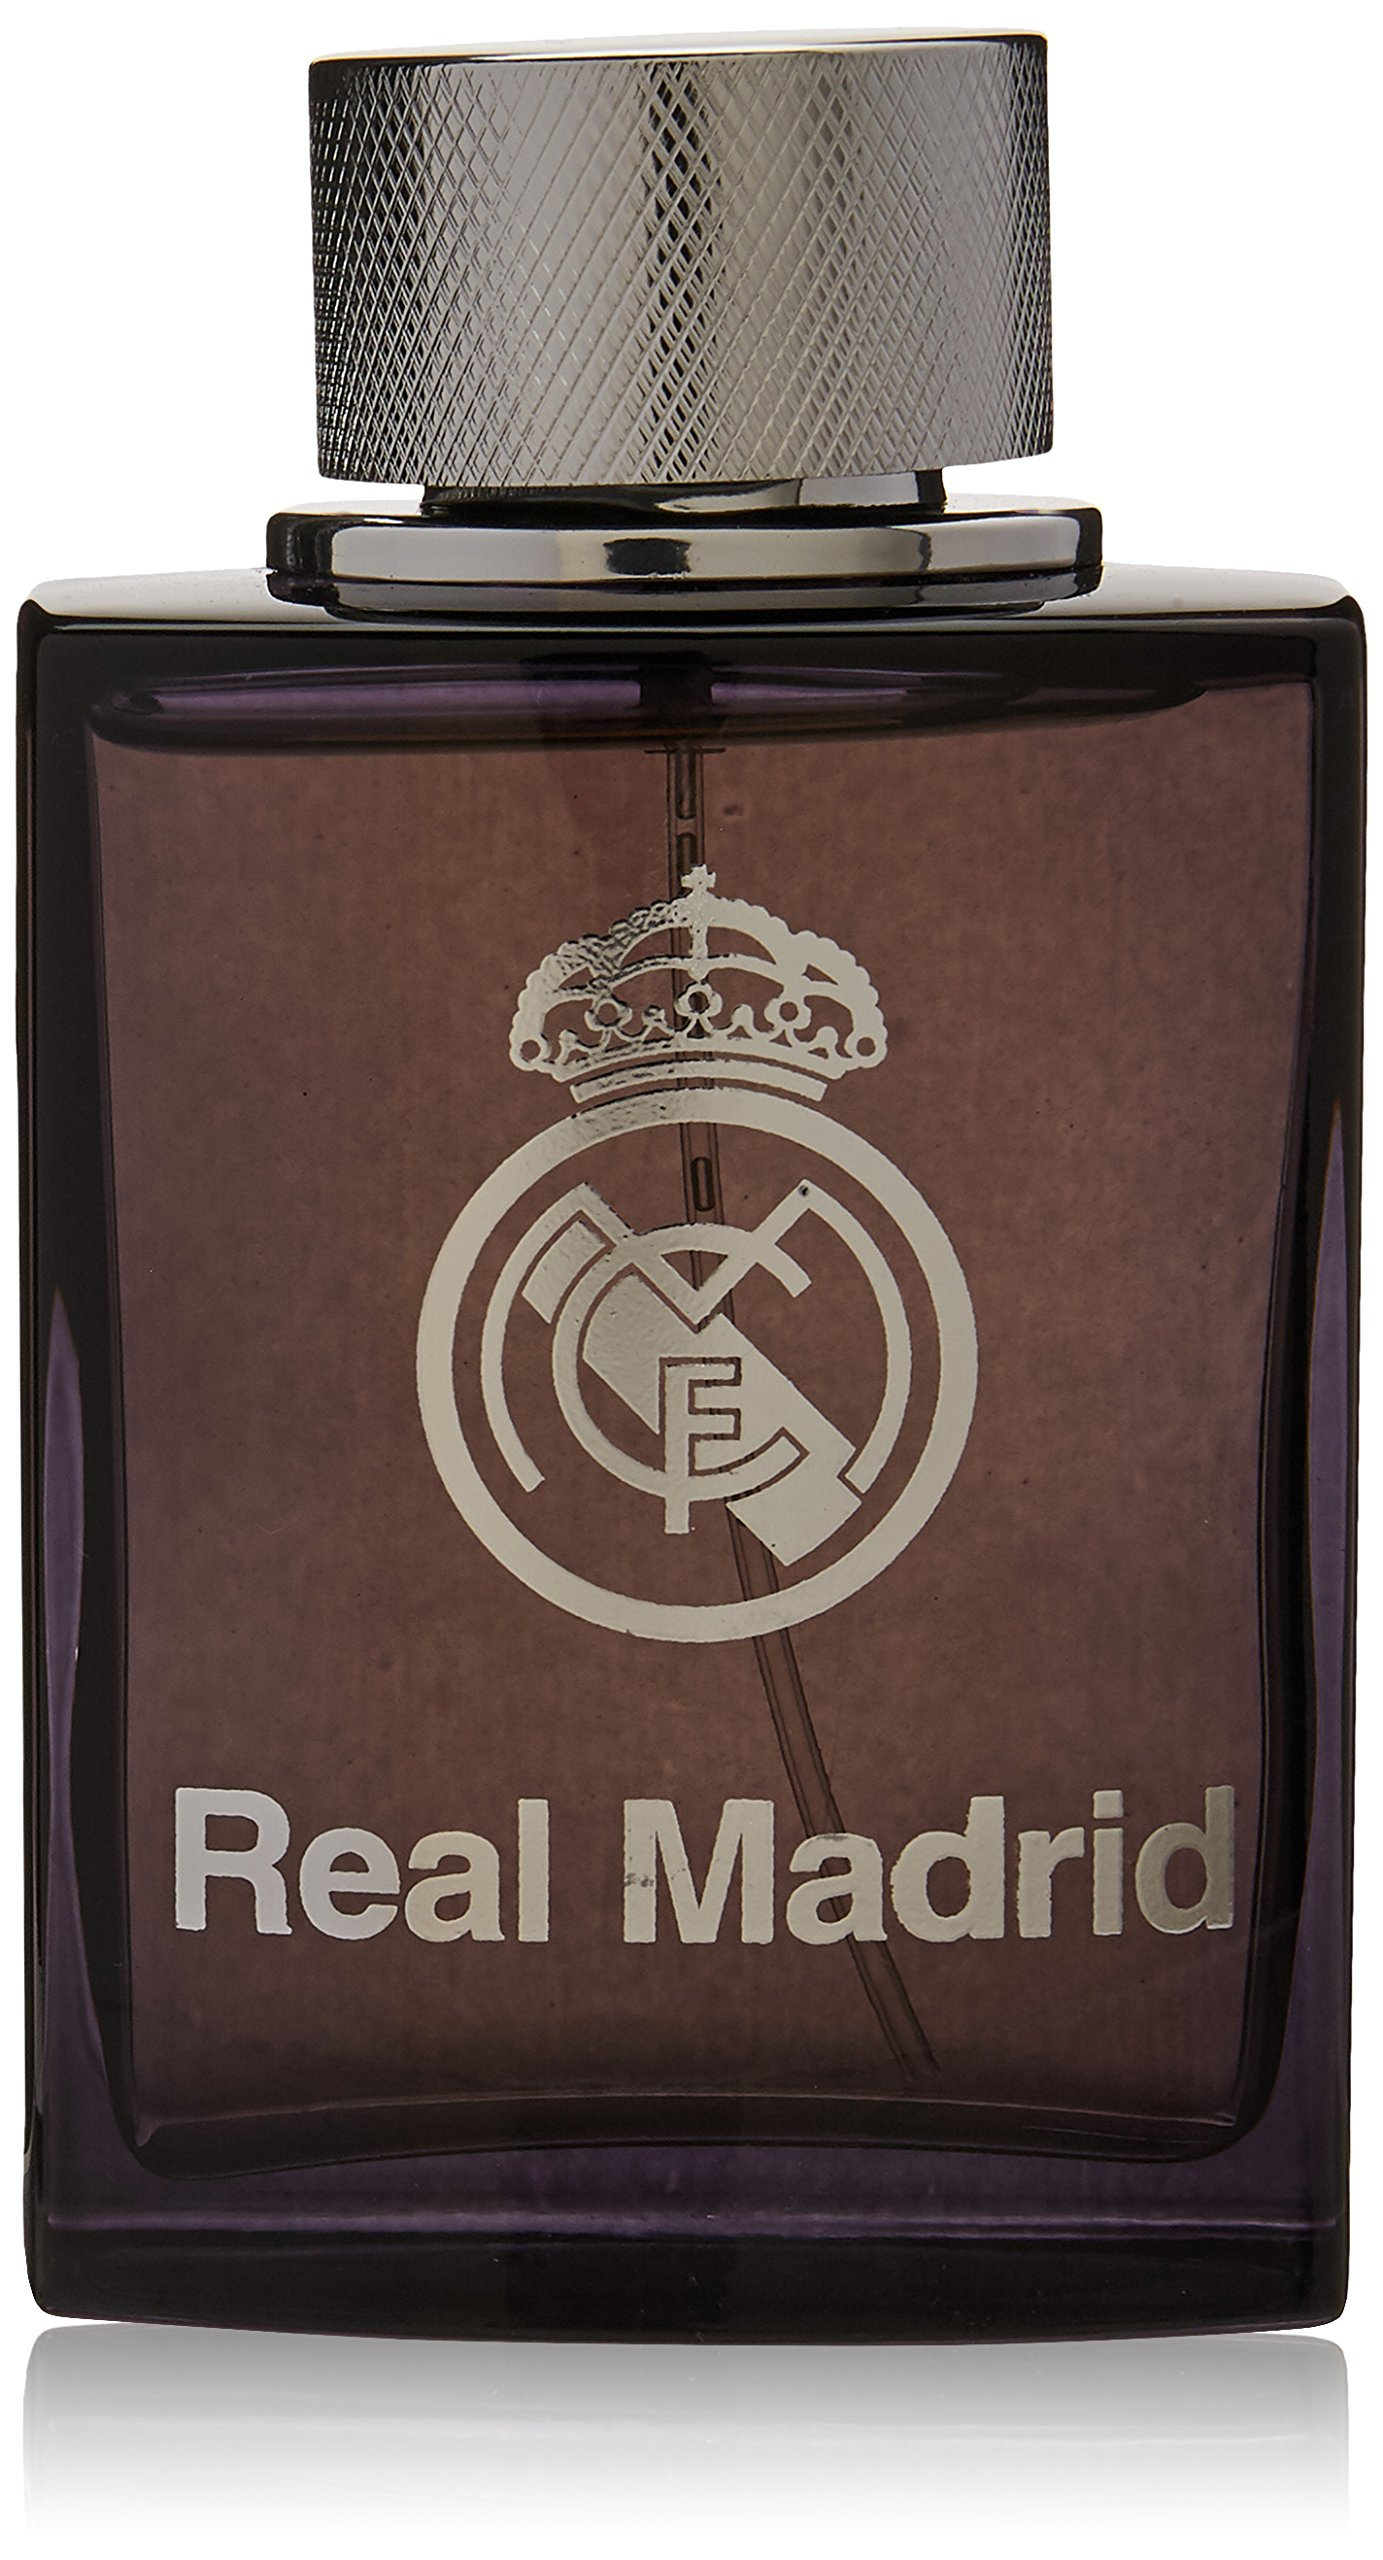 Real Madrid Black EDT Spray for Men, 3.4 Ounce